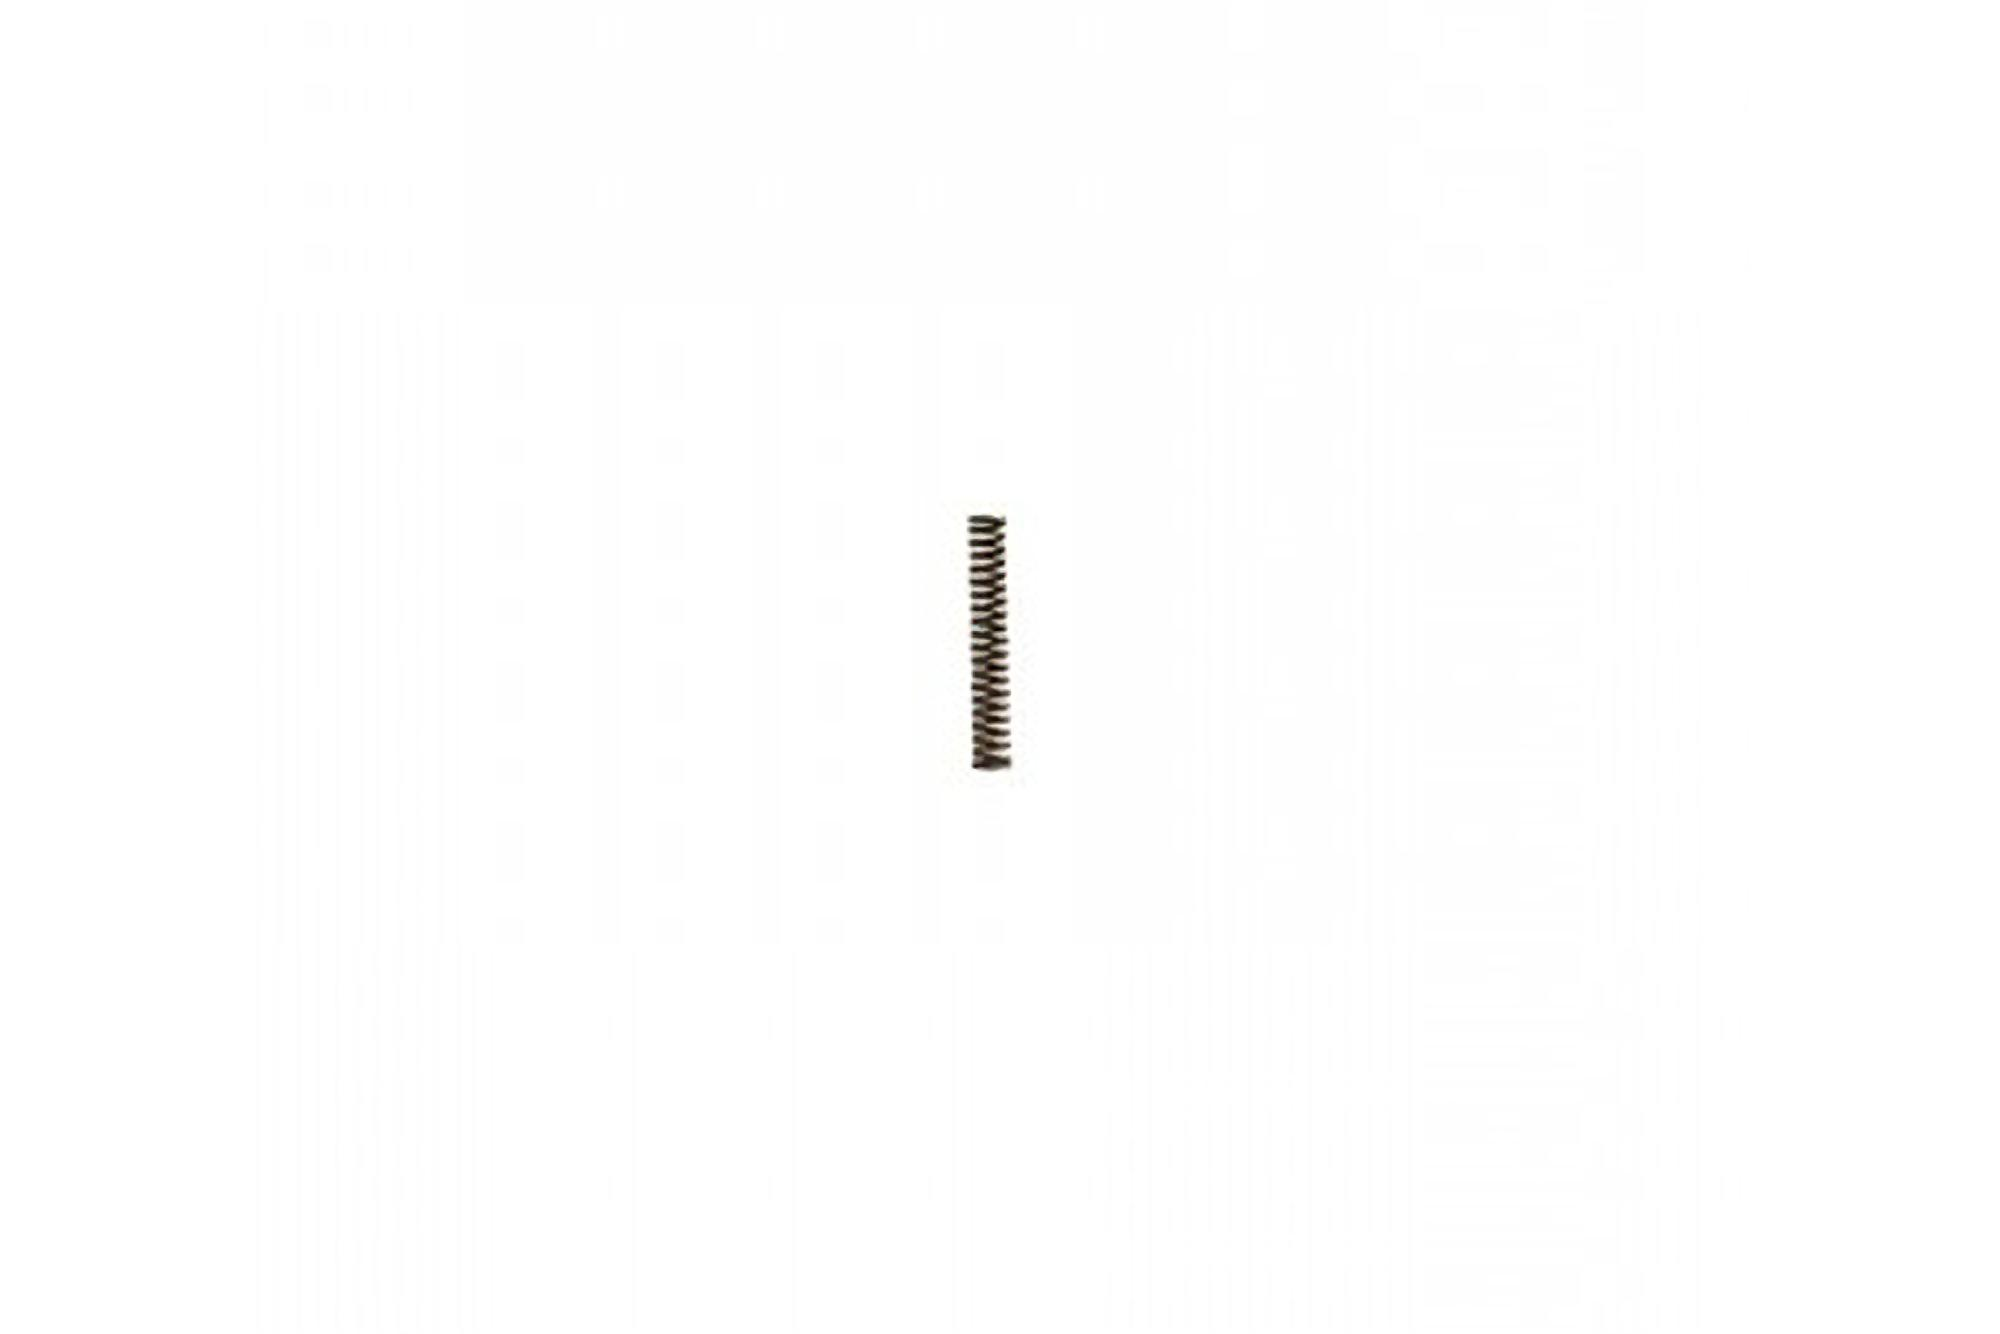 DS Arms AR-15 Front Sight Detent Spring